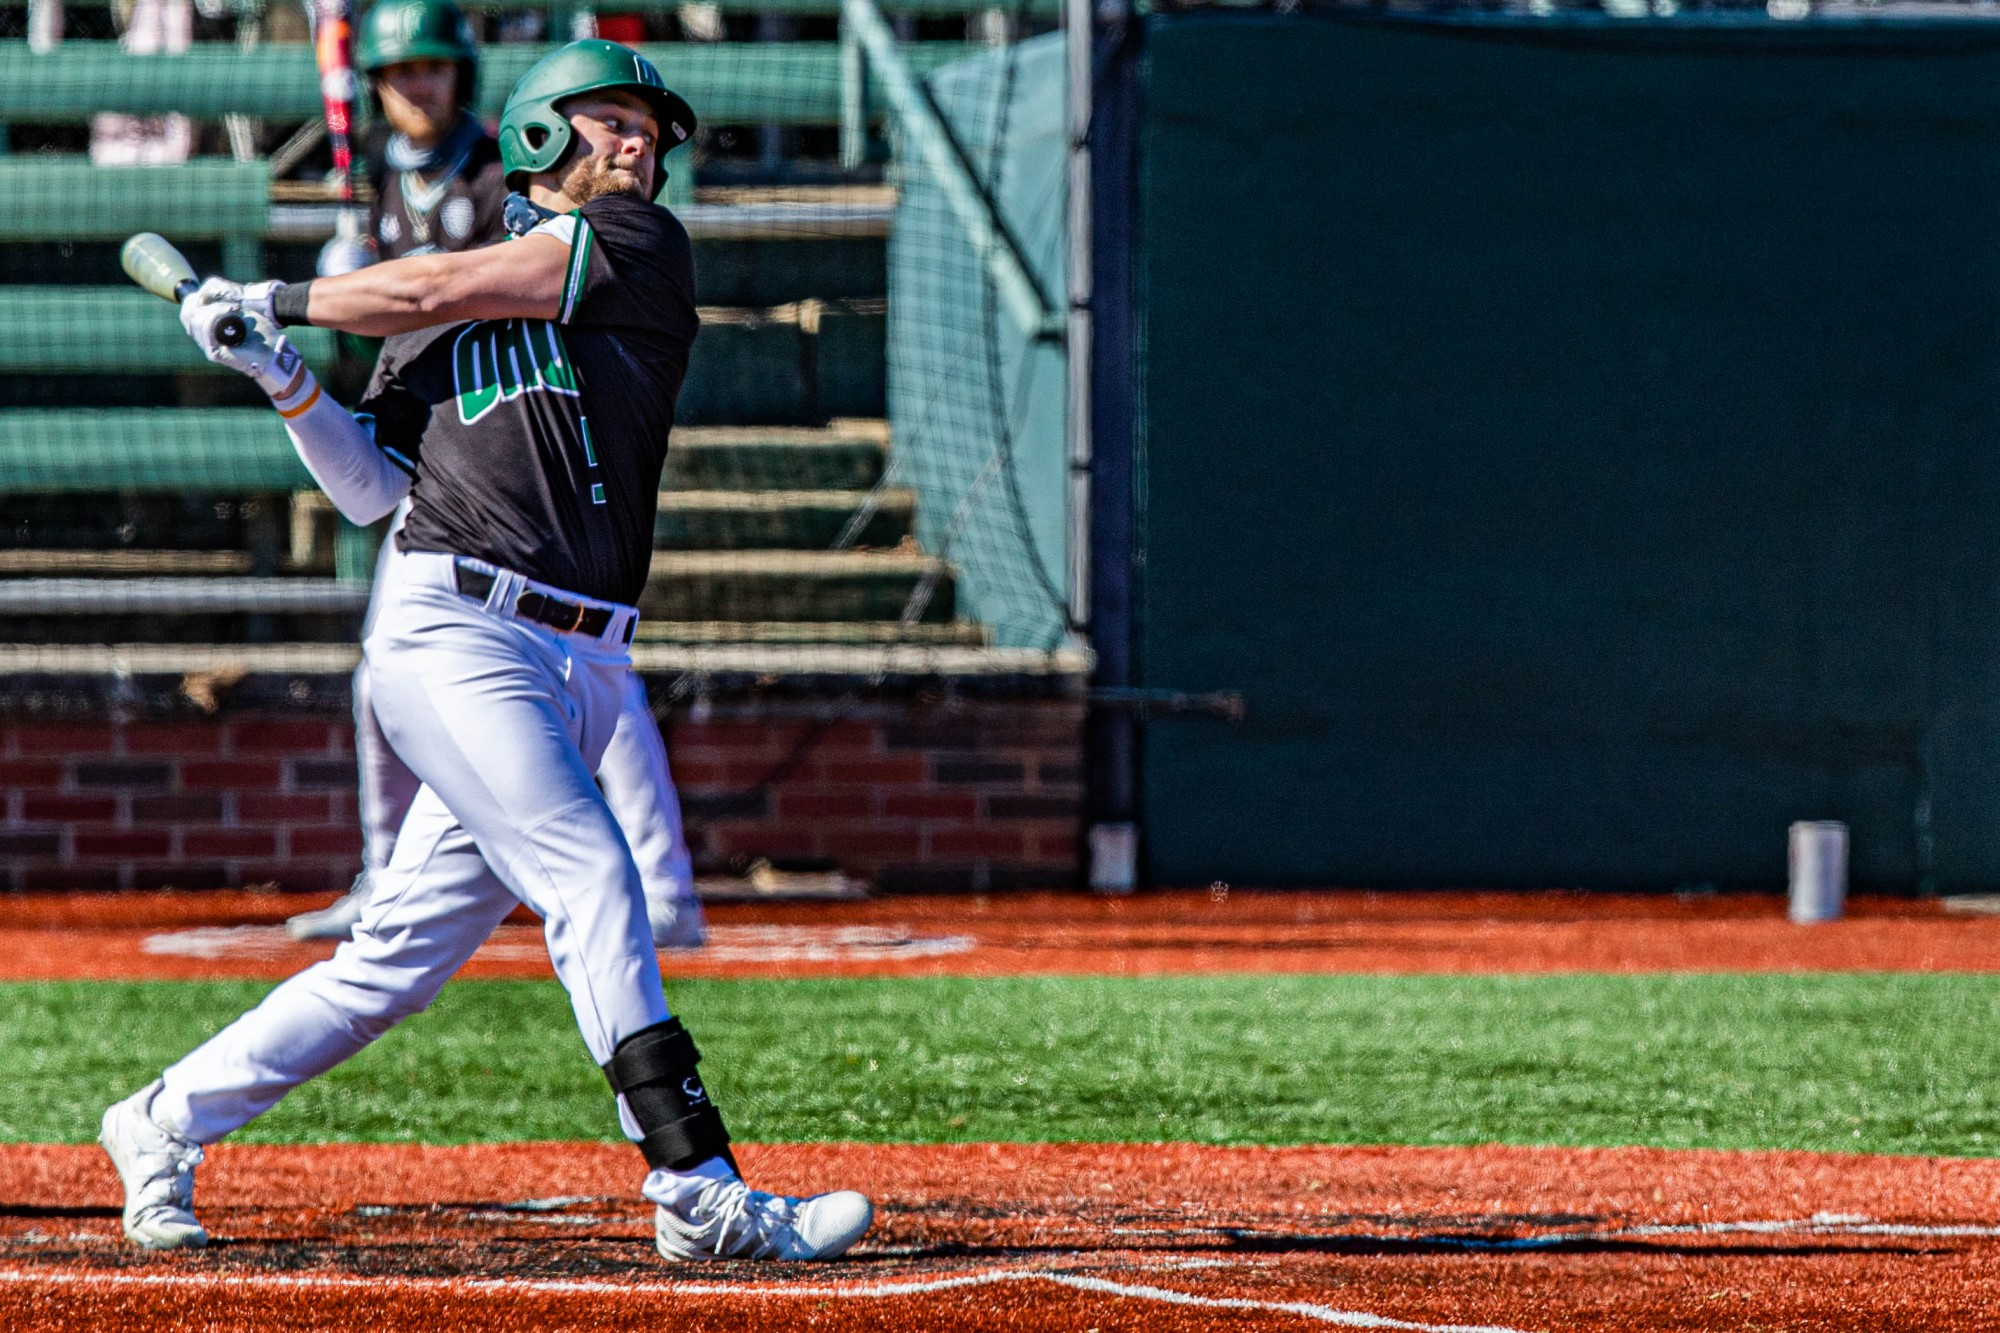 Ohio's Isaiah Peterson (#5) swings against Milwaukee in the eighth inning of the last game ending with a winning score of 3-2 on Sunday, March 7, 2021. (FILE)